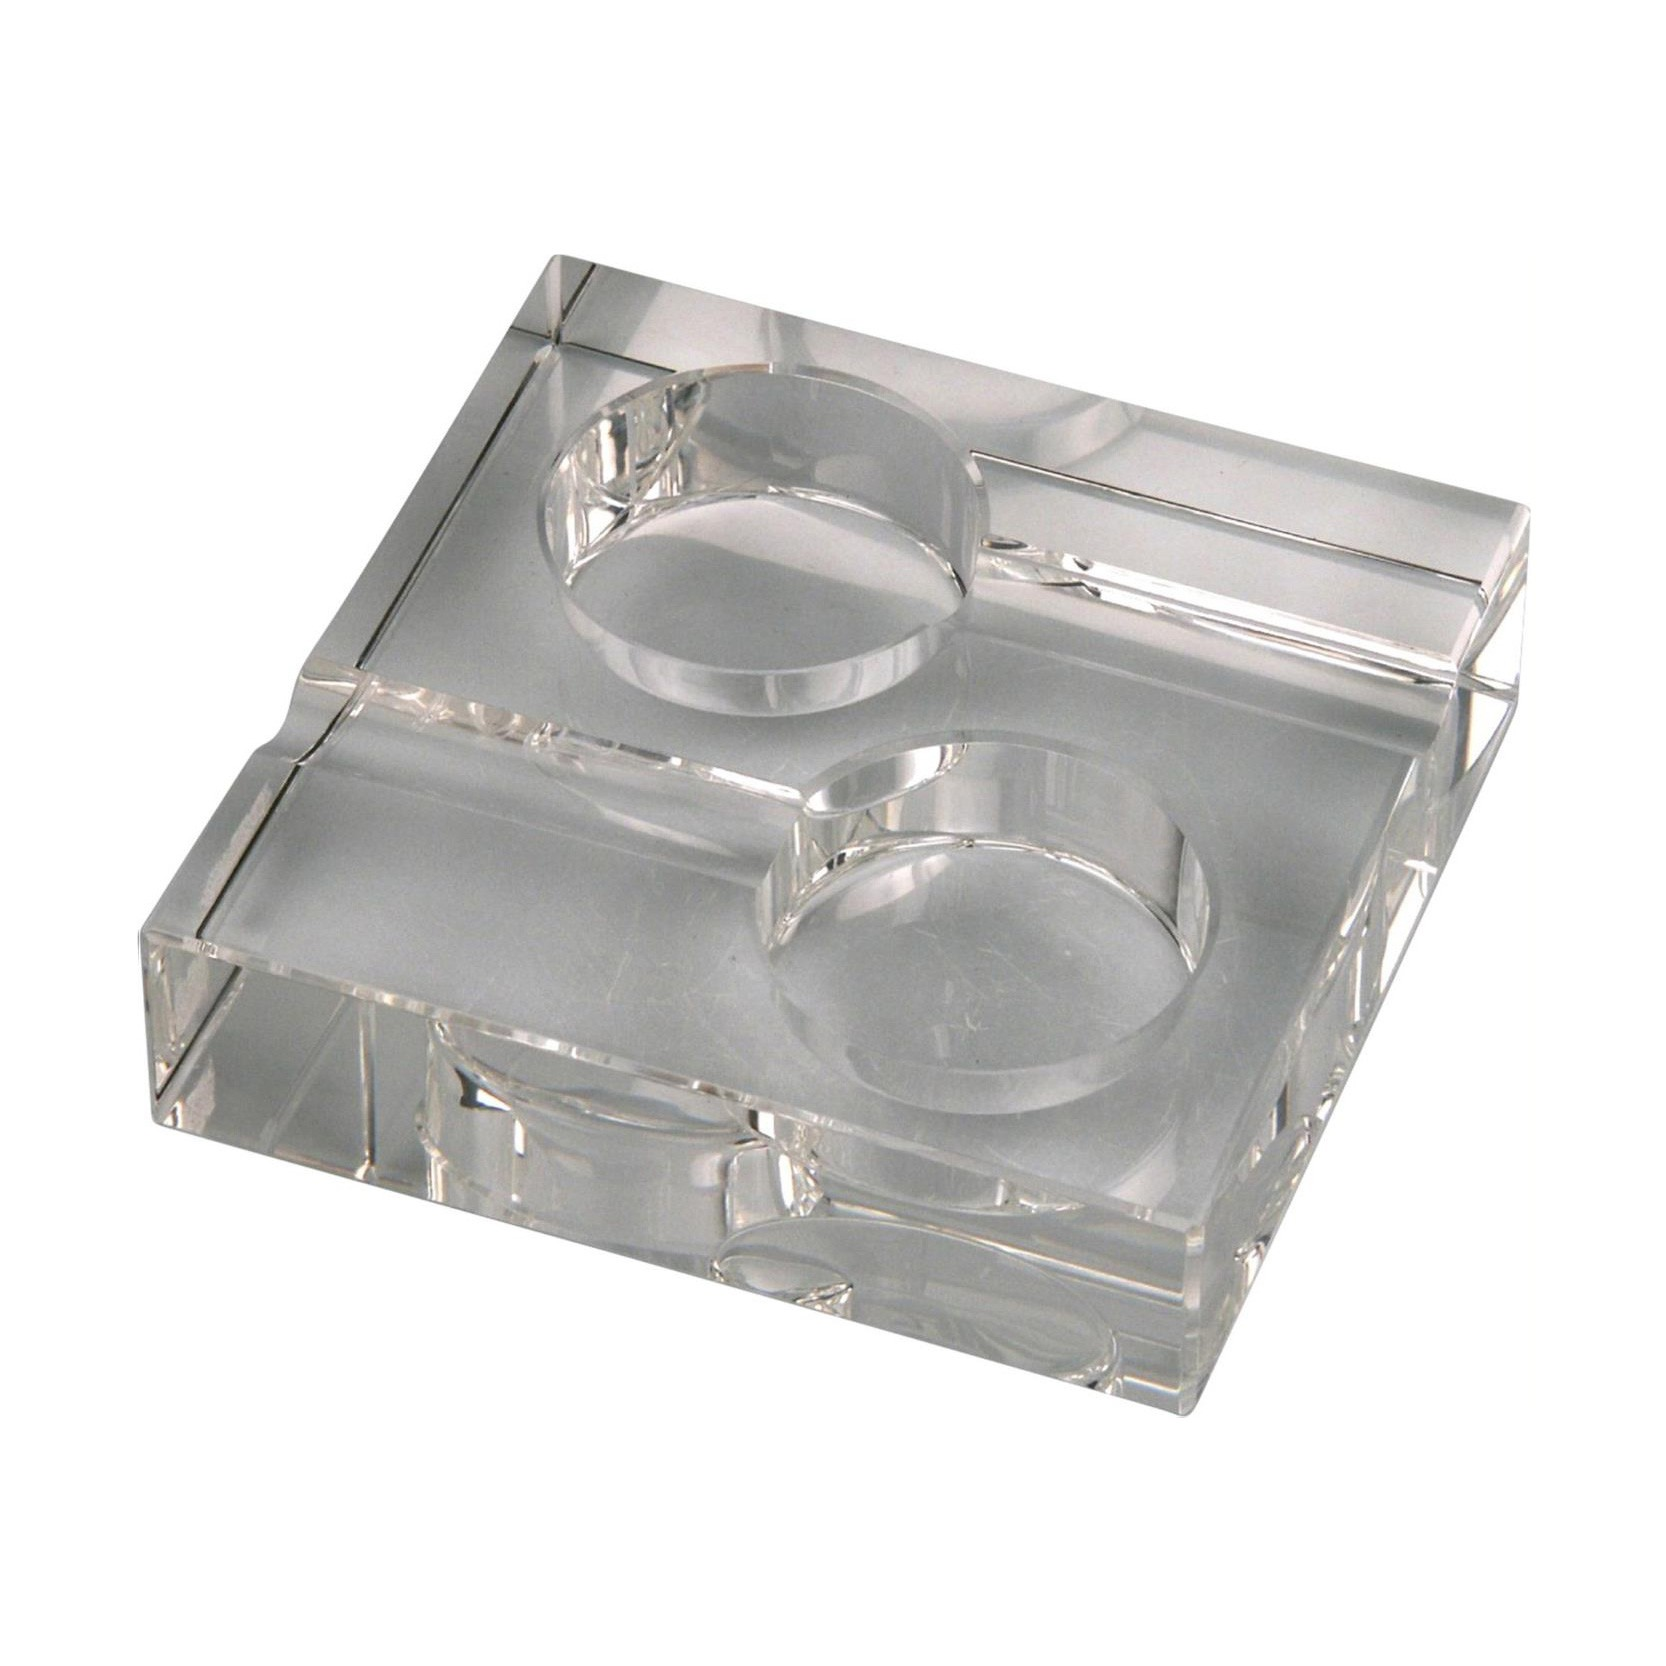 Crystal Cigar ashtray glass/squared 2 rests H 4 x W 15 x T 15 cm